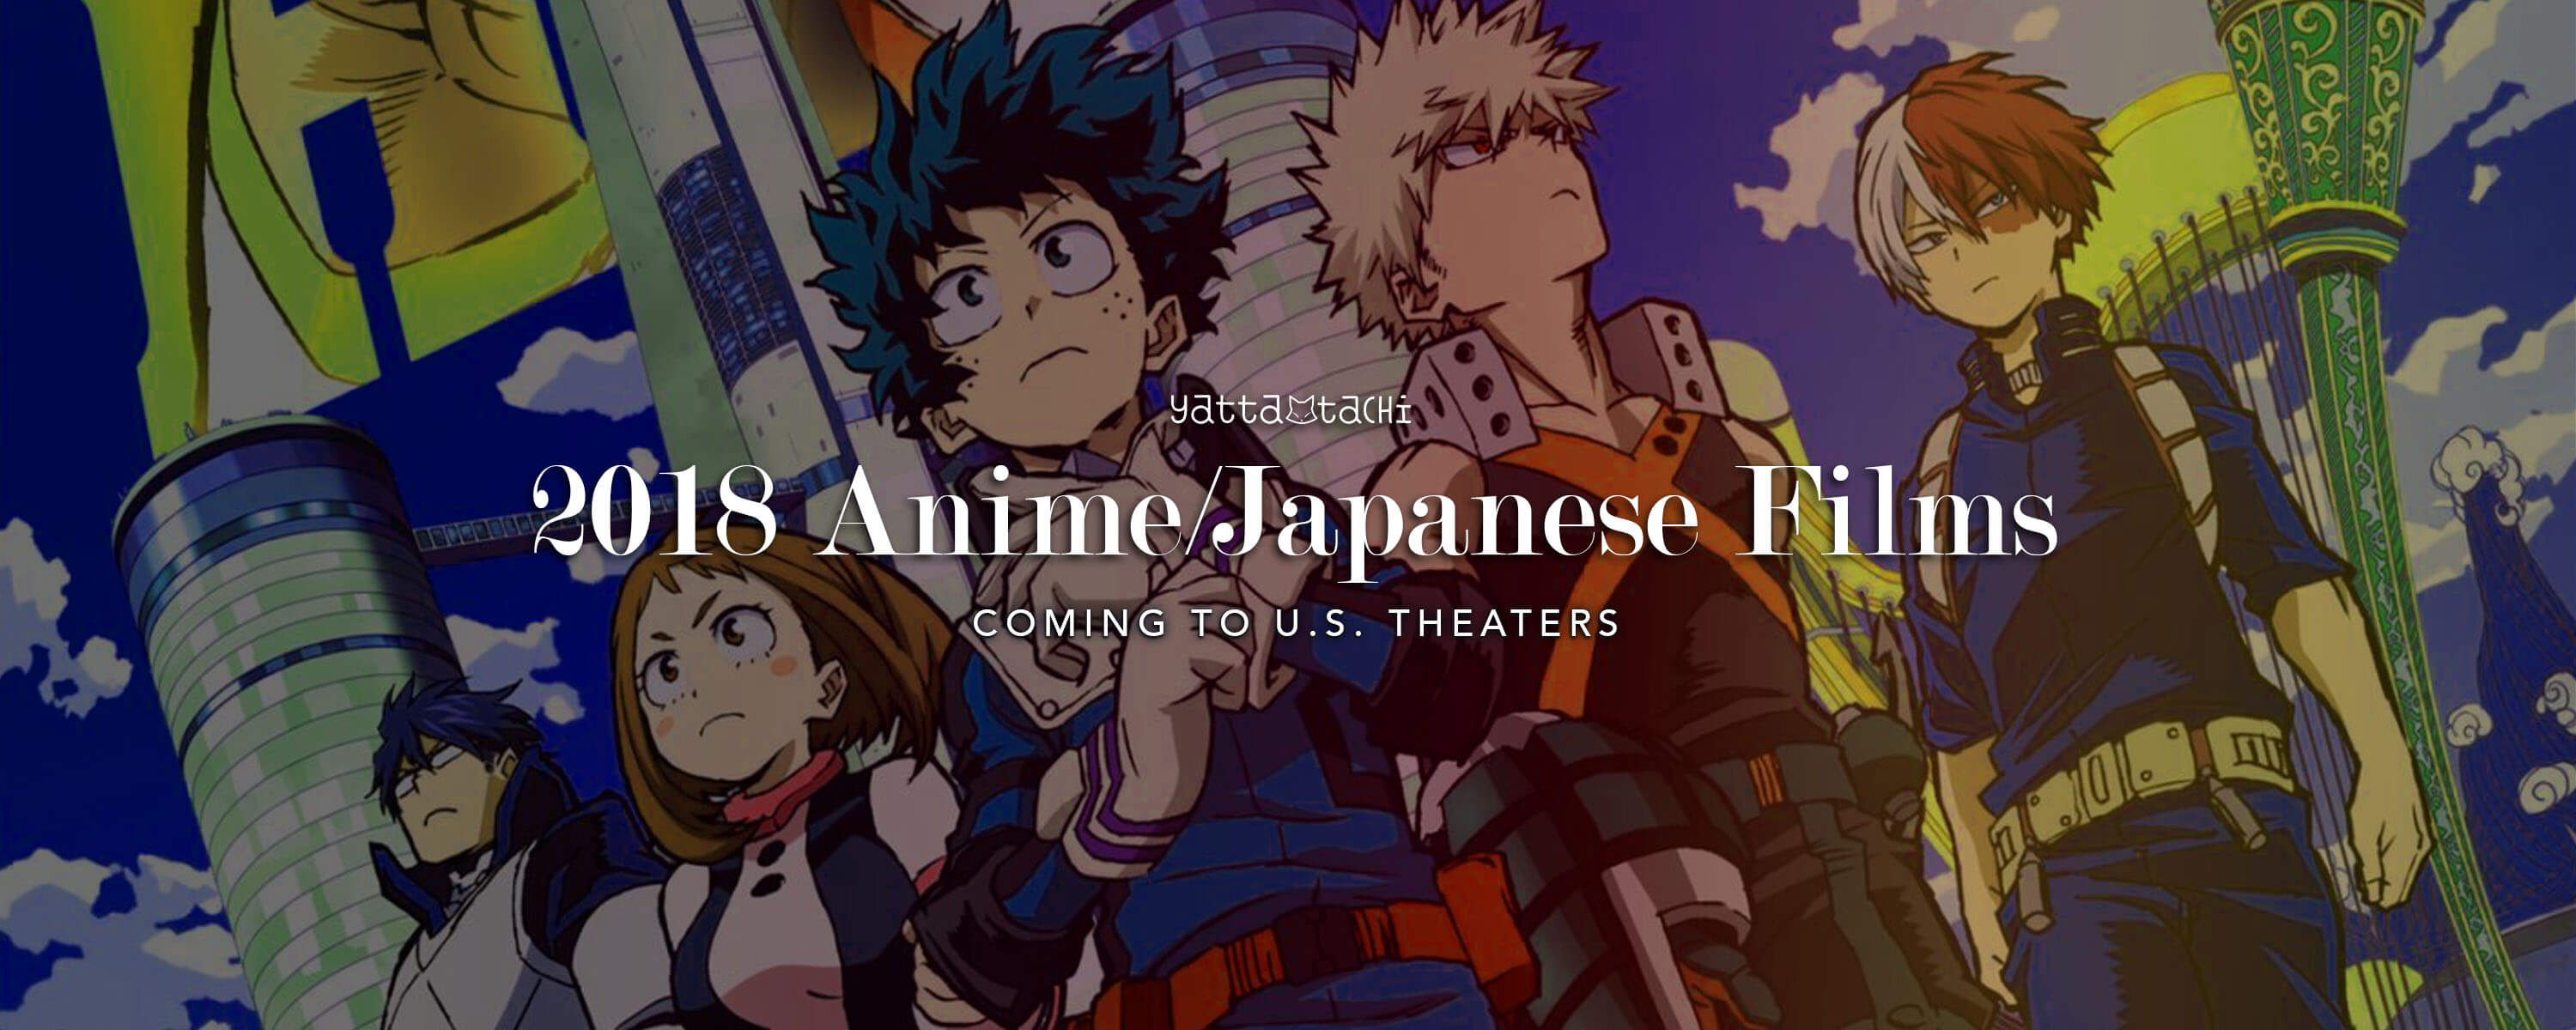 283a4607 2018 Anime/Japanese Films Coming to U.S. Theaters » Yatta-Tachi